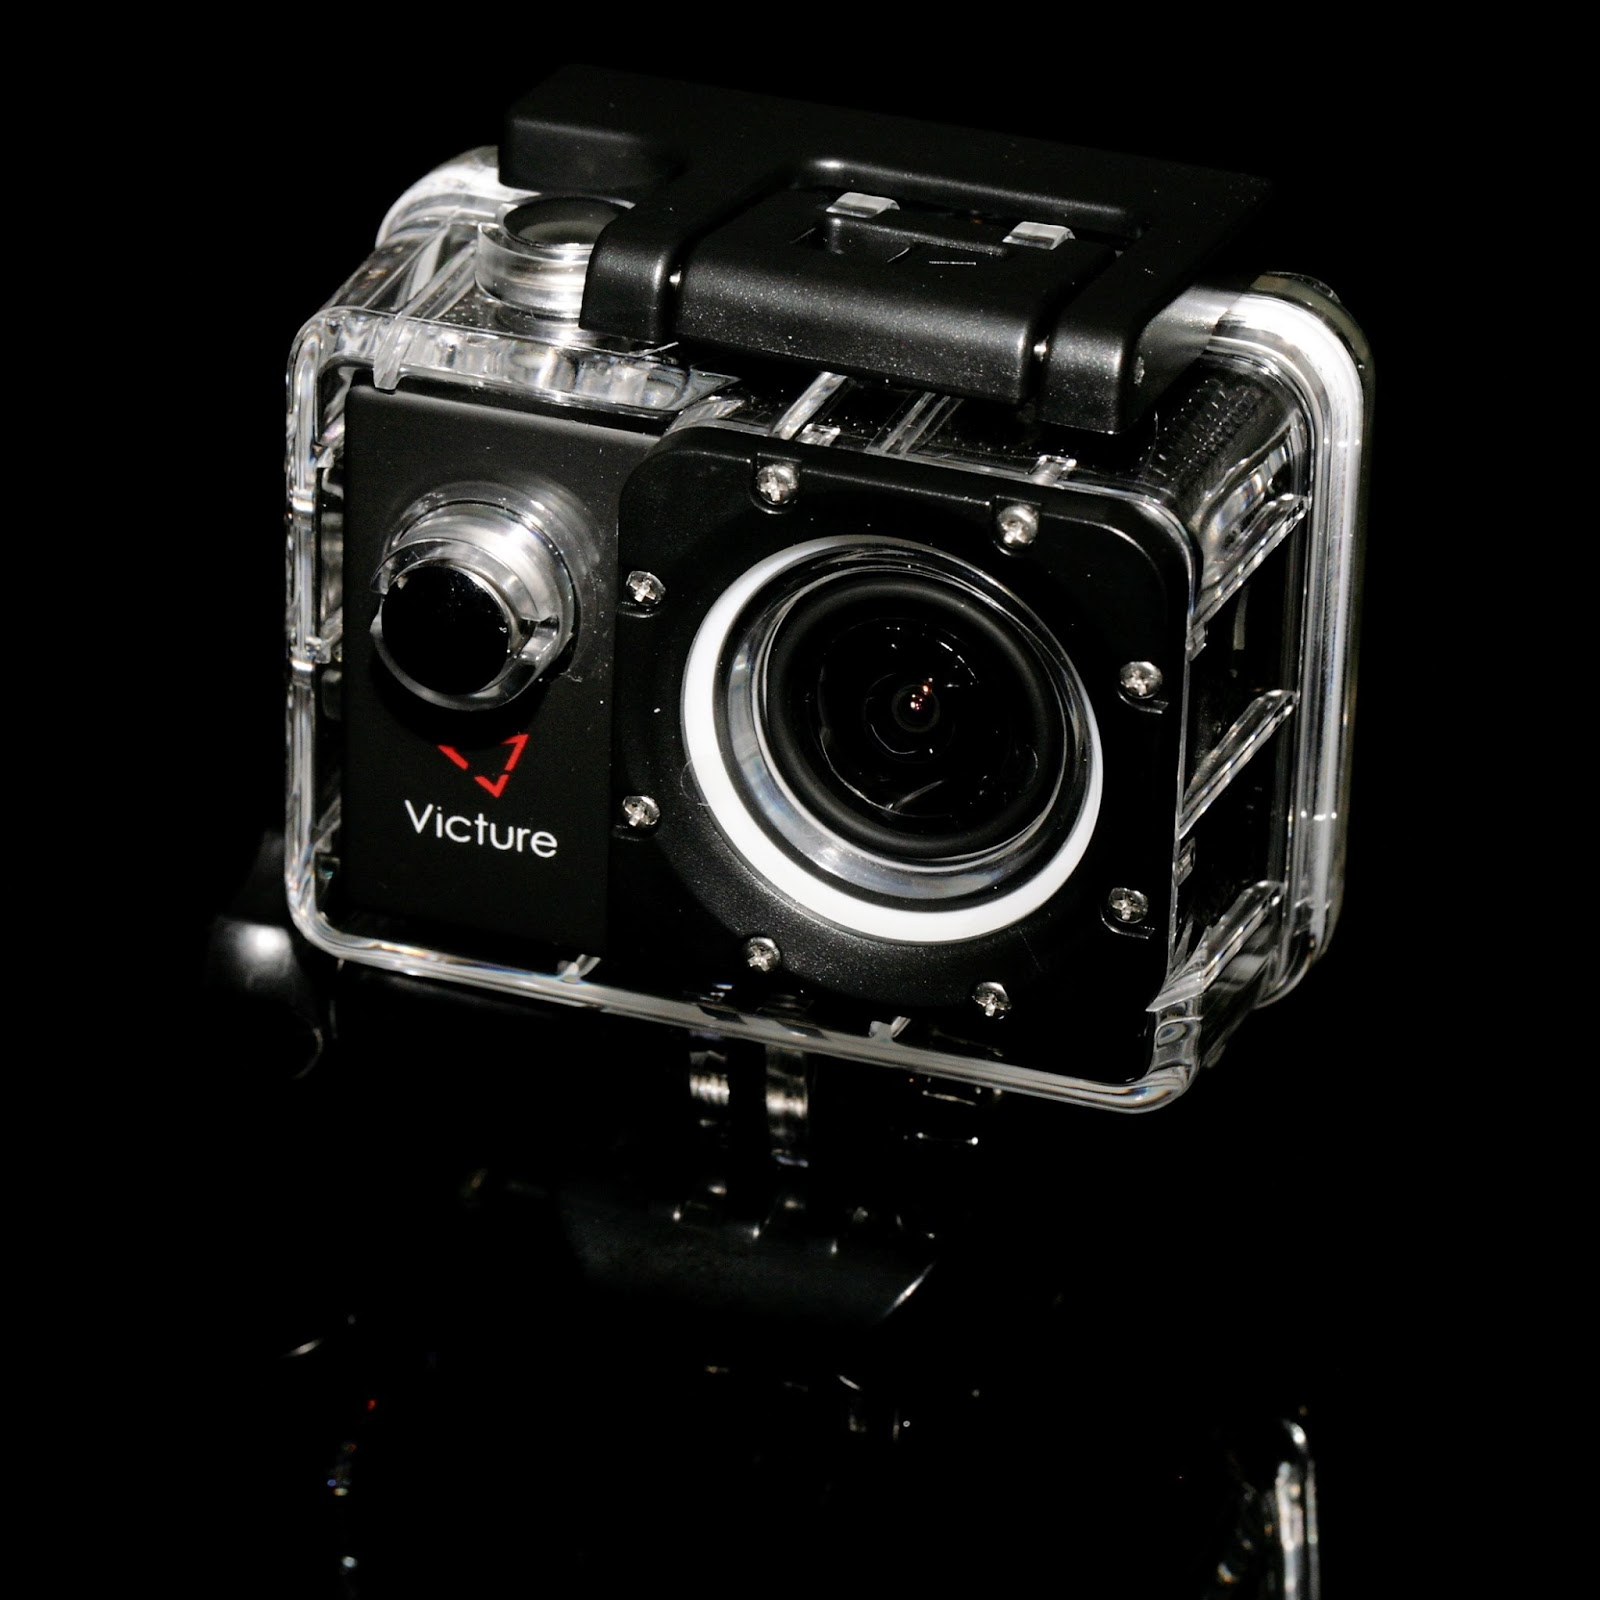 Victure 1080p 12MP Action Camera Review